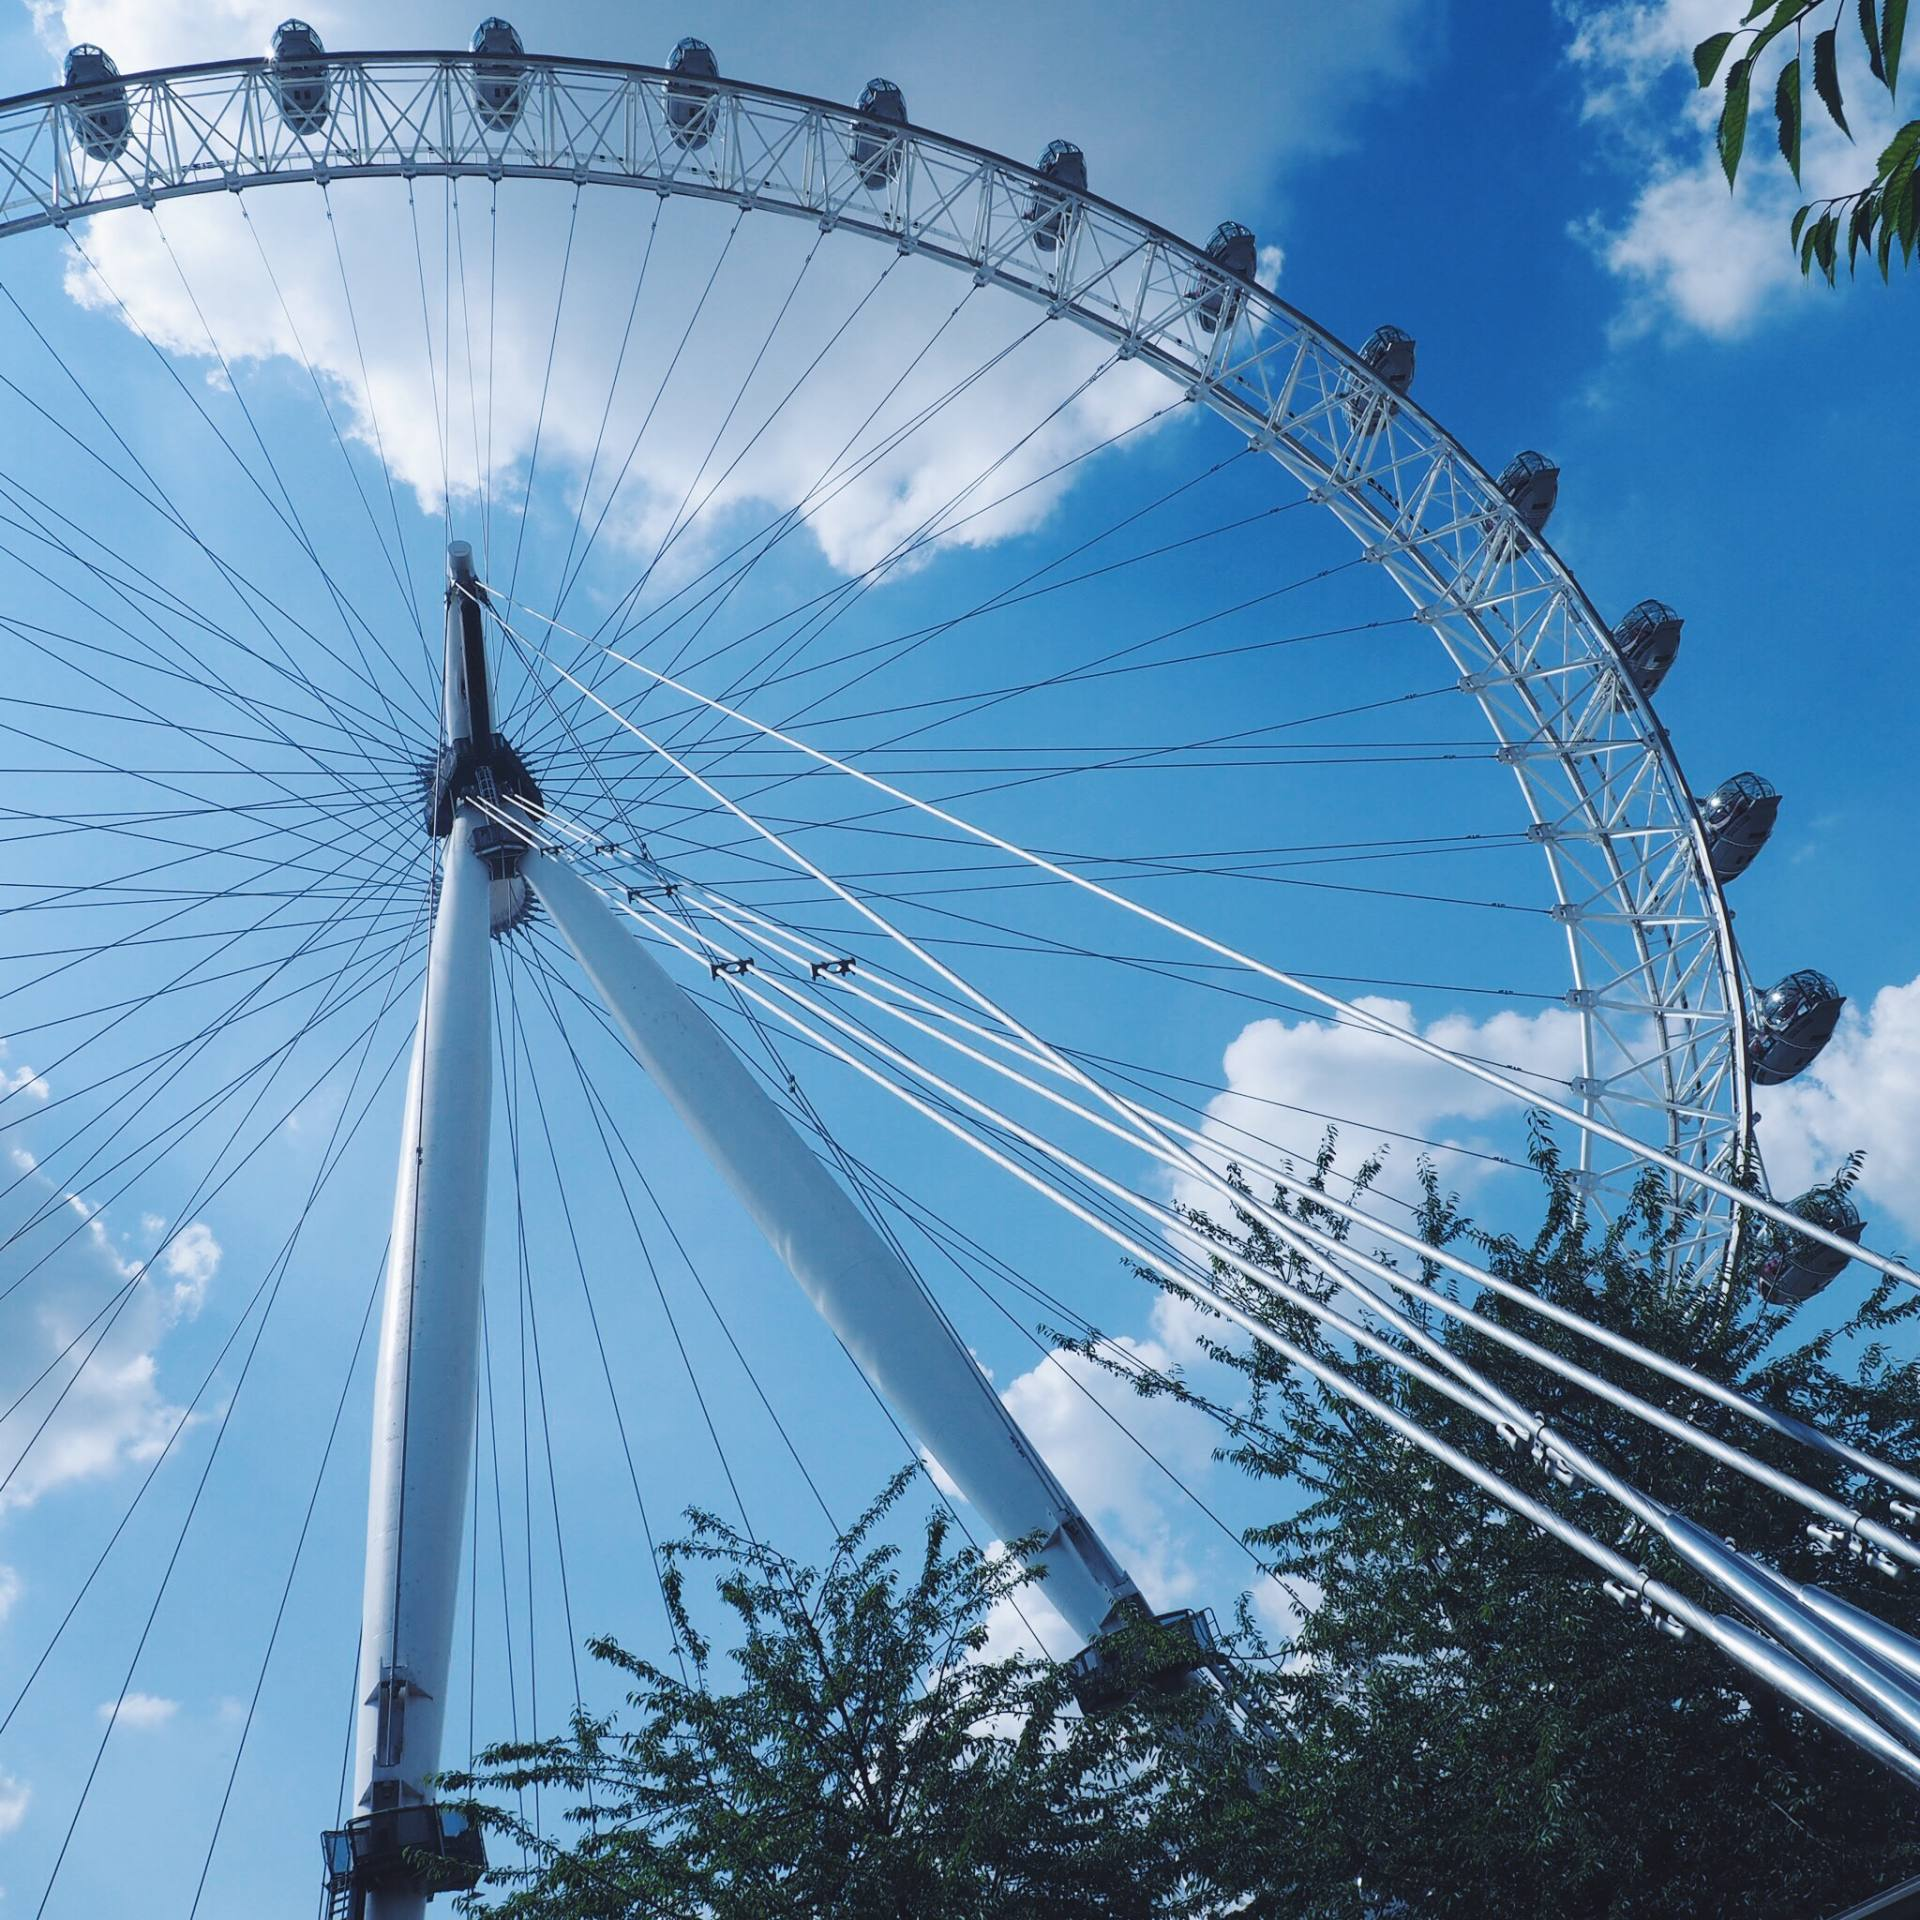 Sightseeing and the London Eye